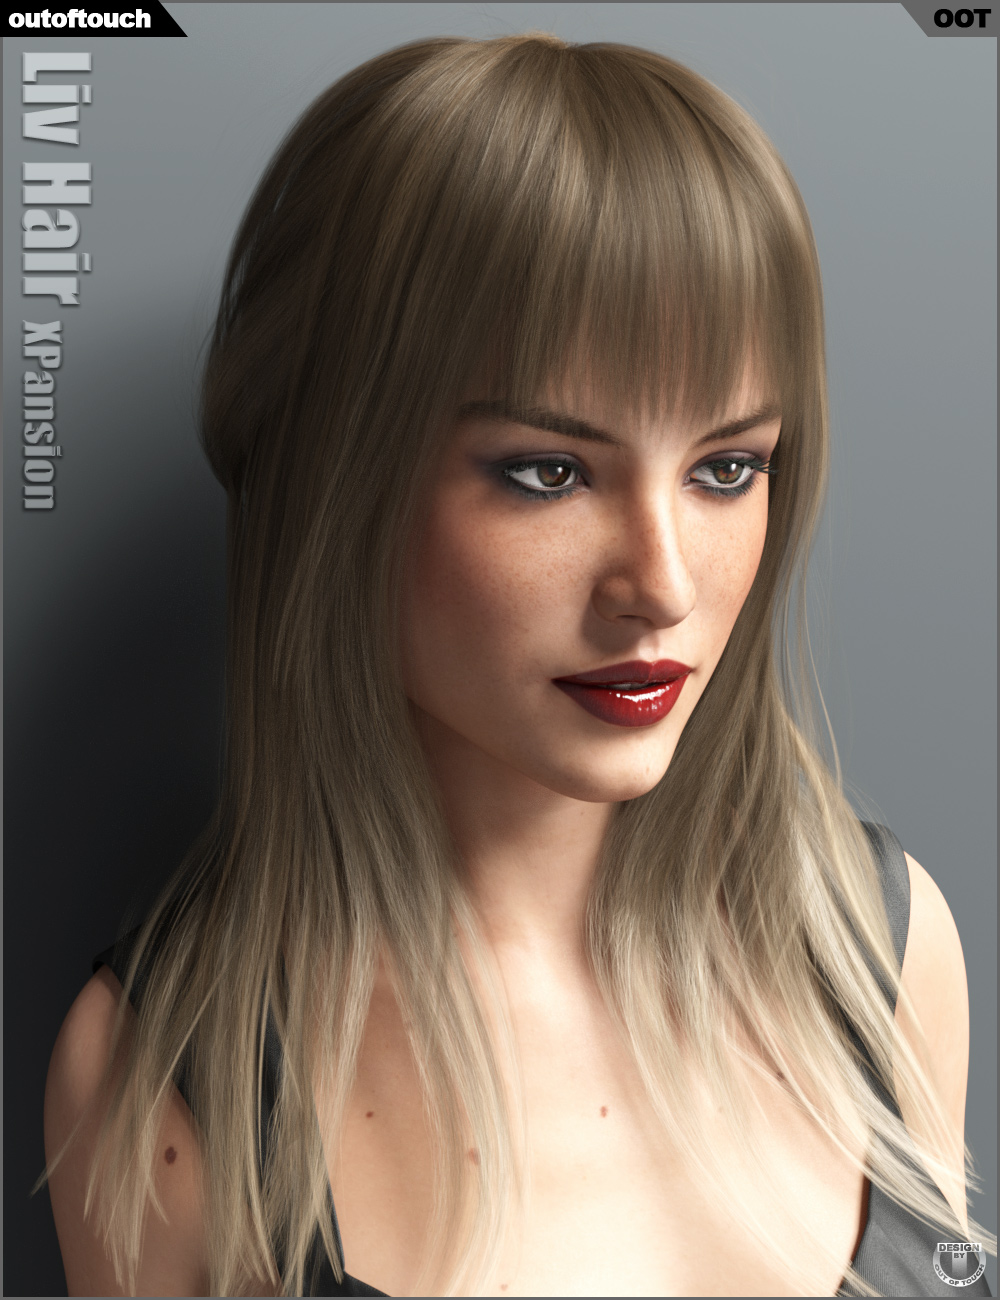 Liv Hair and OOT Hairblending 2.0 Texture XPansion by: outoftouch, 3D Models by Daz 3D